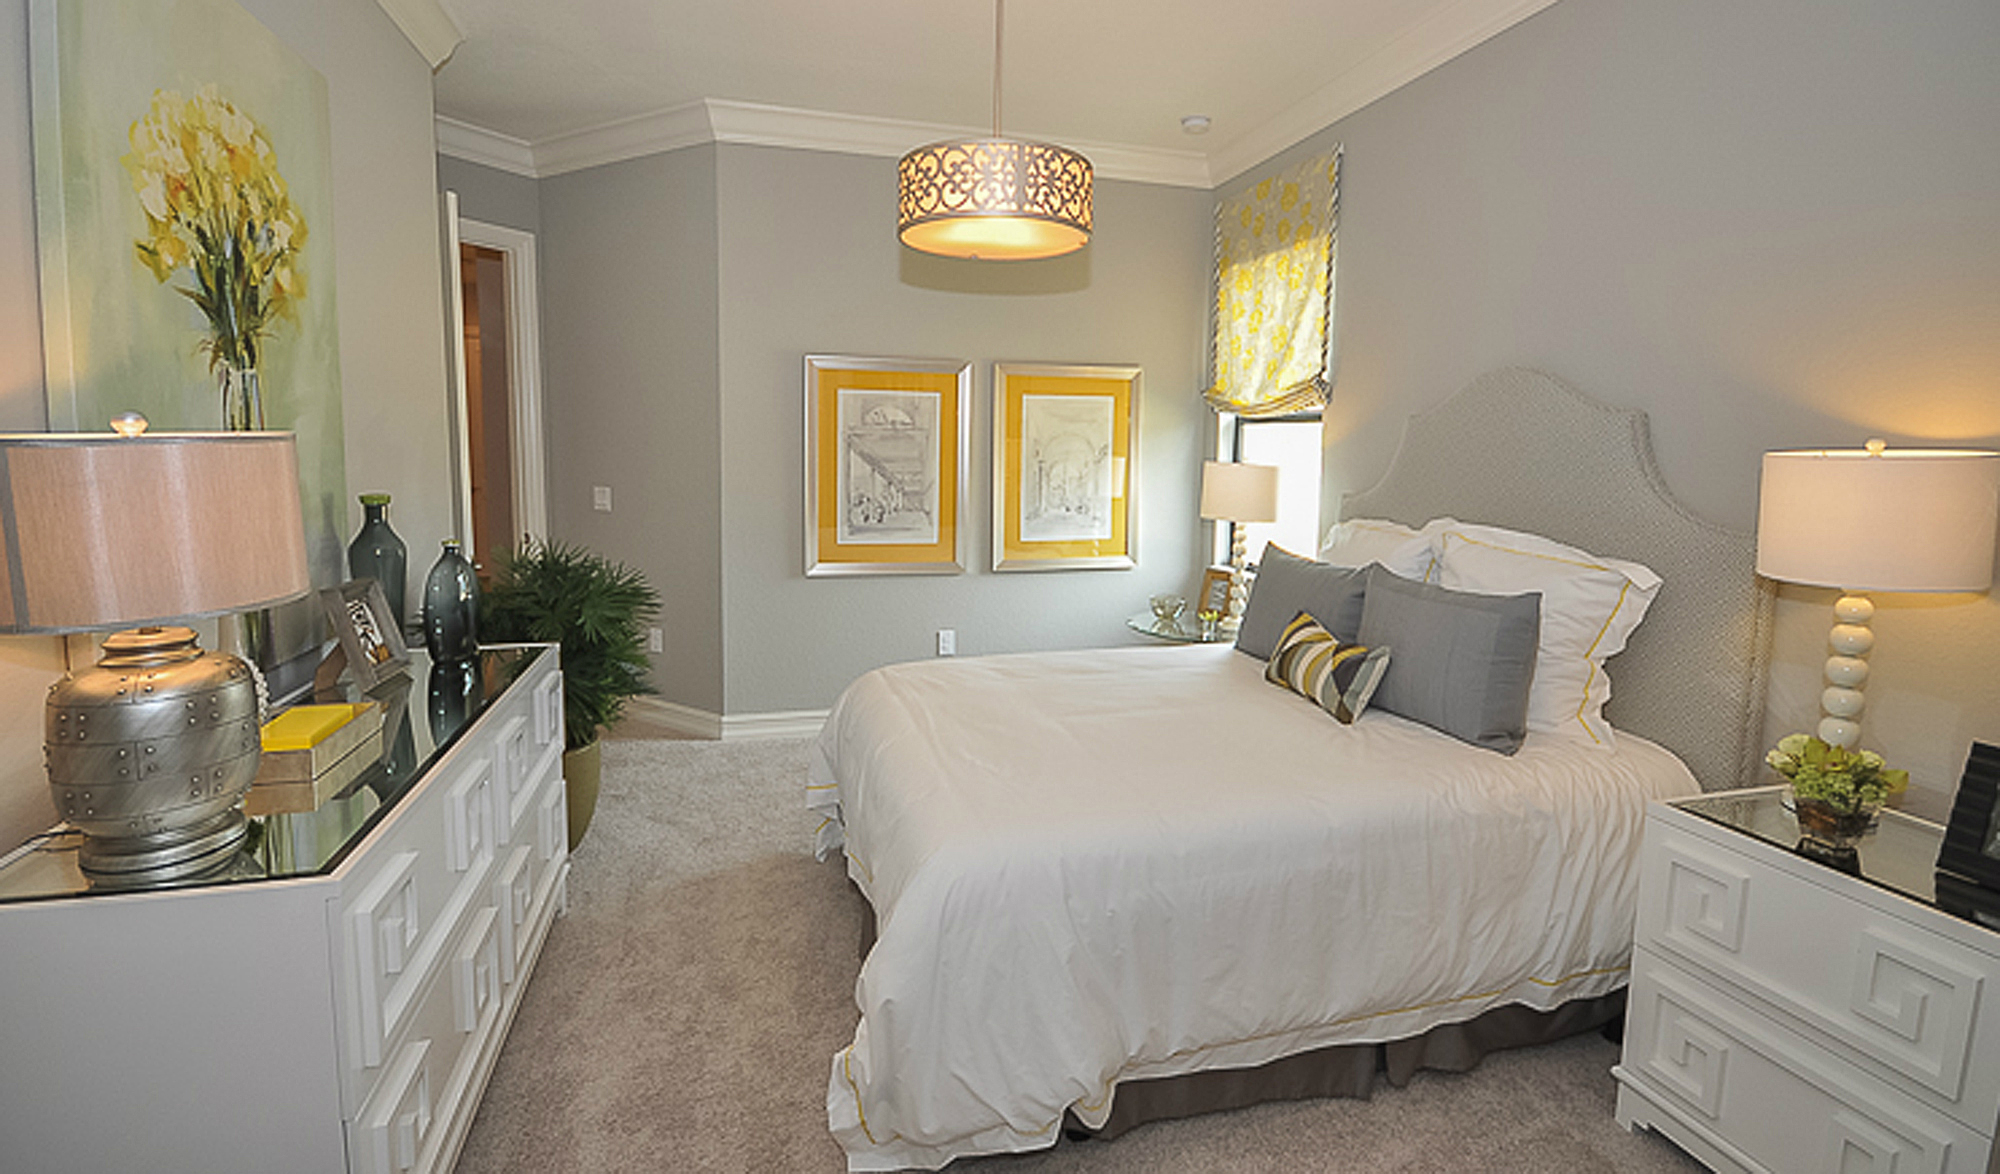 Guest Room Beasley Henley Interior Design Naples FL